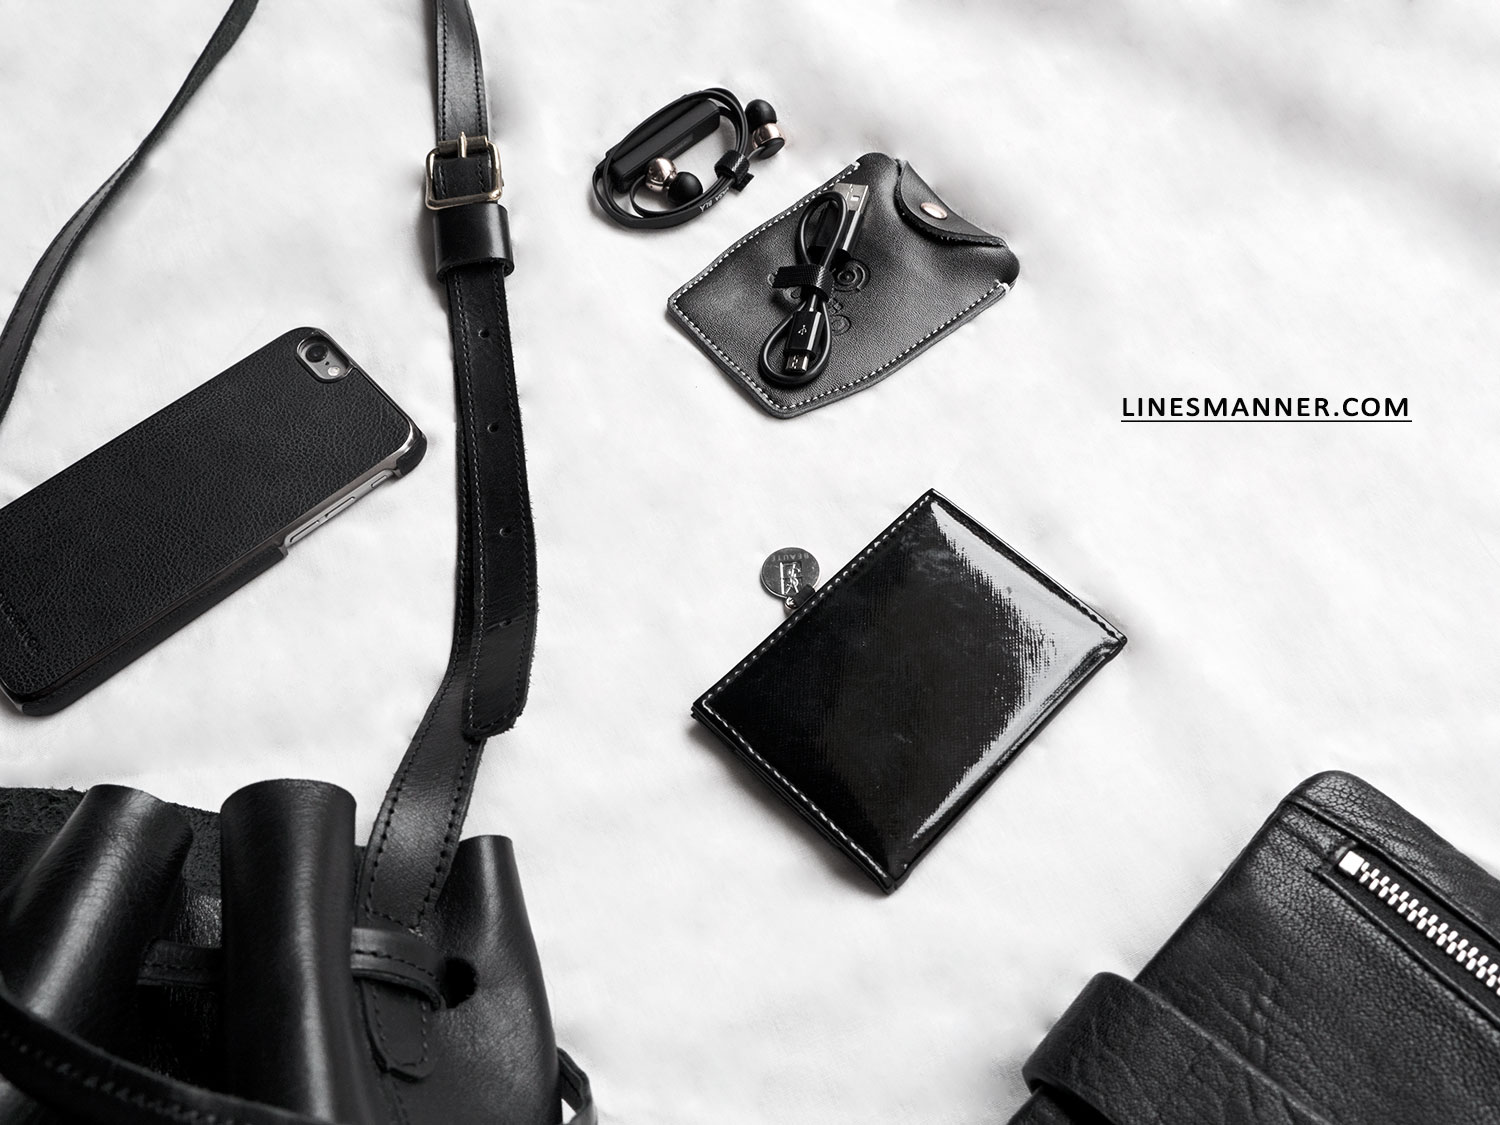 Lines-Manner-All_Back-Essentials-Bucket_bag-Utilities-Textures-Handcrafted-Leather-Sustainable-Luxury-Minimal-Details-2